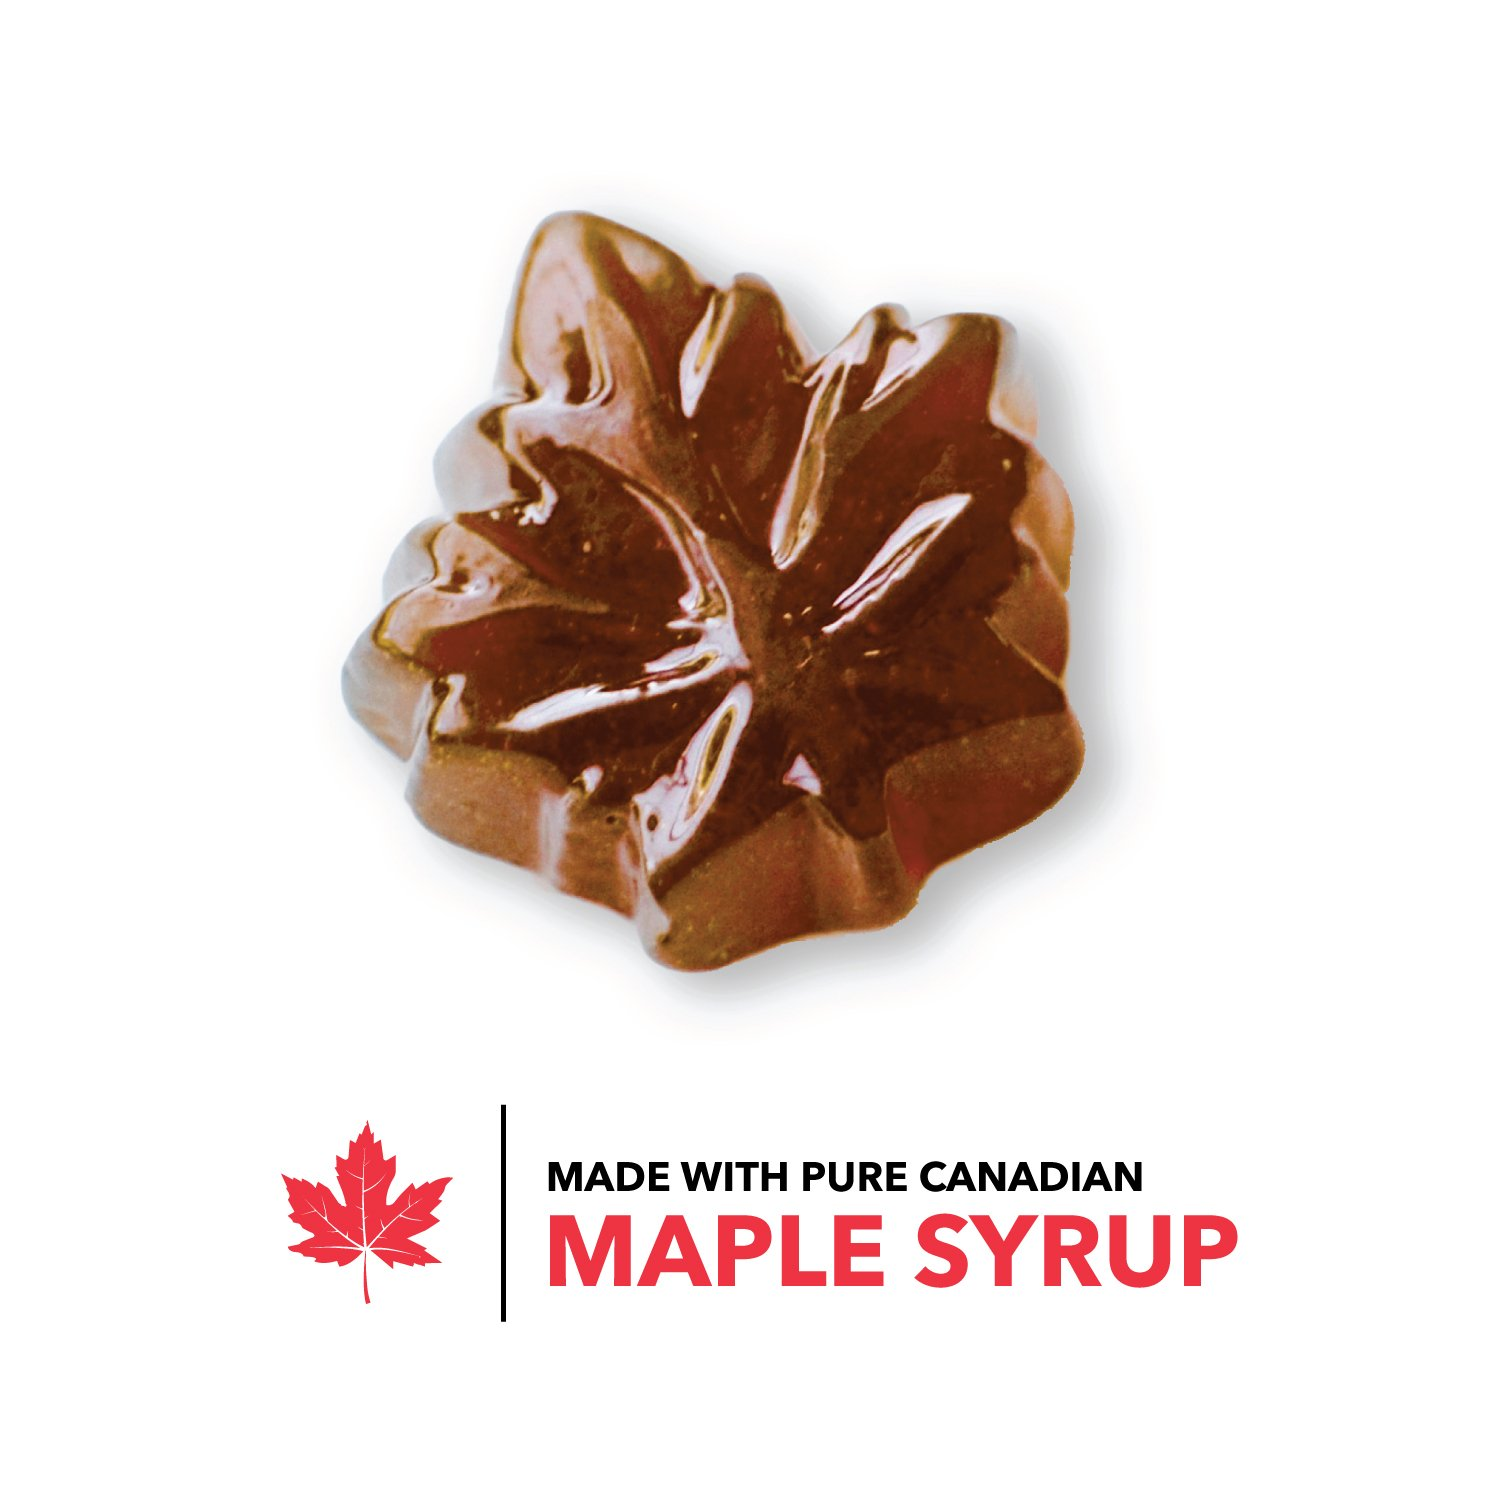 Premium Canadian Maple Sugar Hard Candy Drops Made from Pure Maple Syrup from Canada - Tristan Foods (3-lb) by Tristan Foods (Image #2)